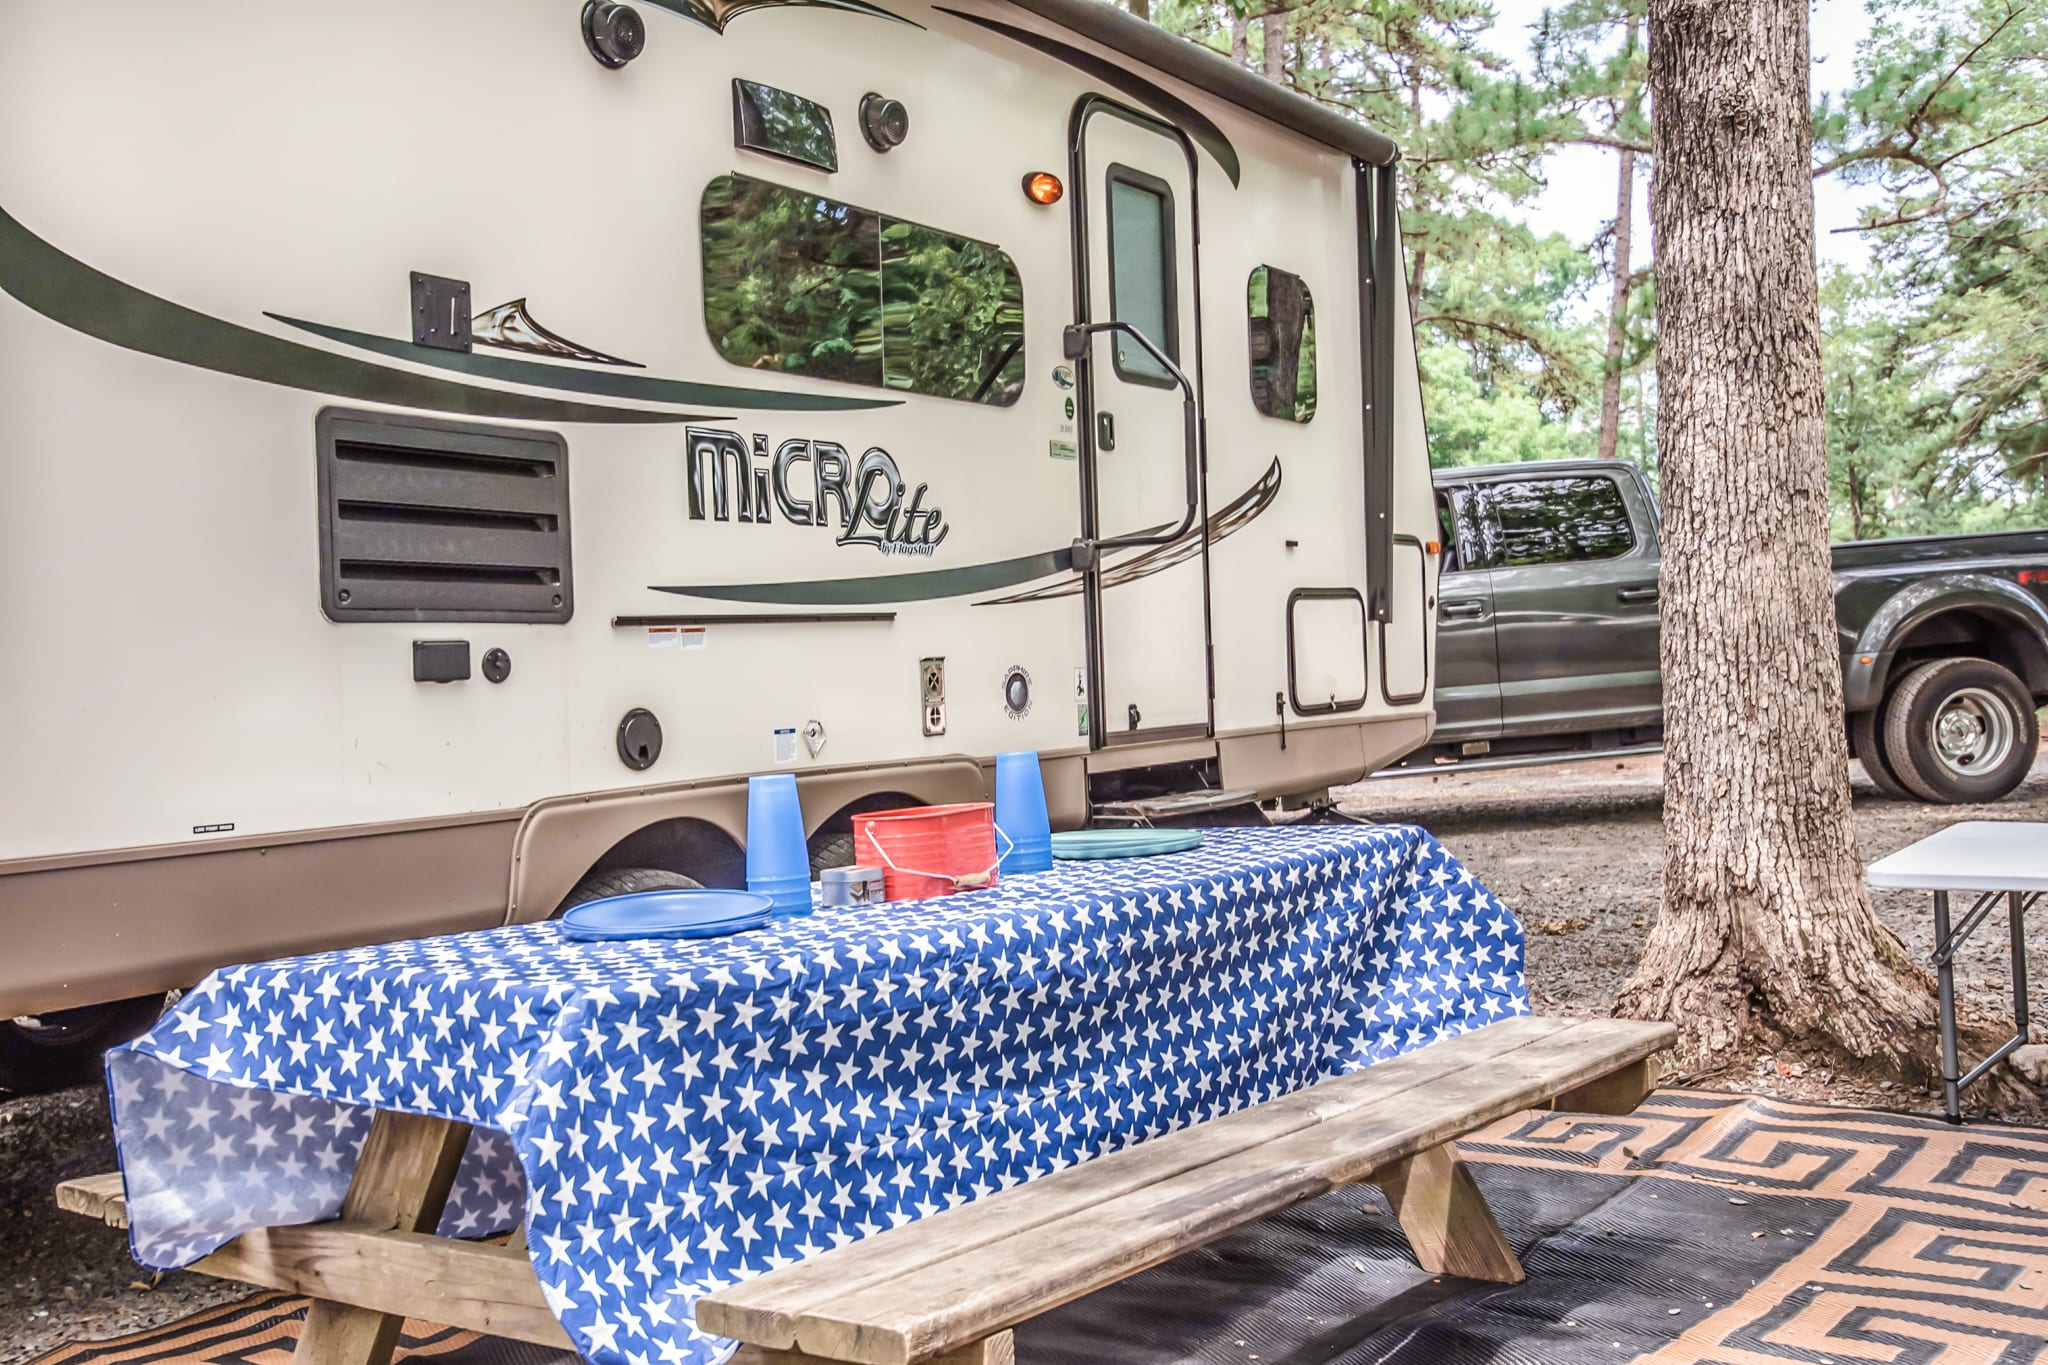 Camper comes with a beautiful picnic tablecloth, outdoor utensils, and have you a wonderful grilling time!. Forest River Micro-Lite 2016